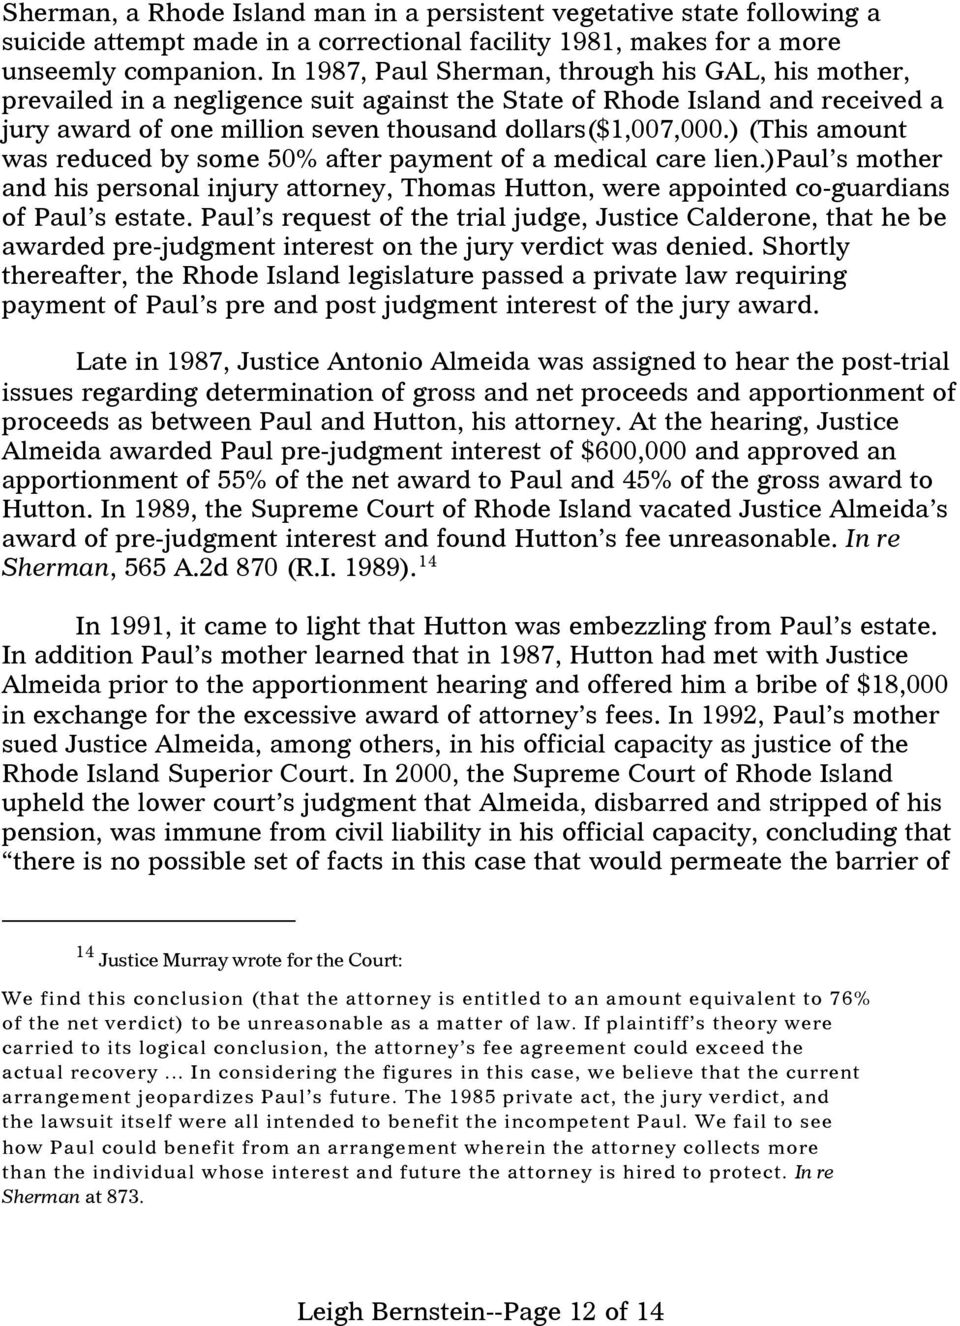 ) (This amount was reduced by some 50% after payment of a medical care lien.)paul s mother and his personal injury attorney, Thomas Hutton, were appointed co-guardians of Paul s estate.